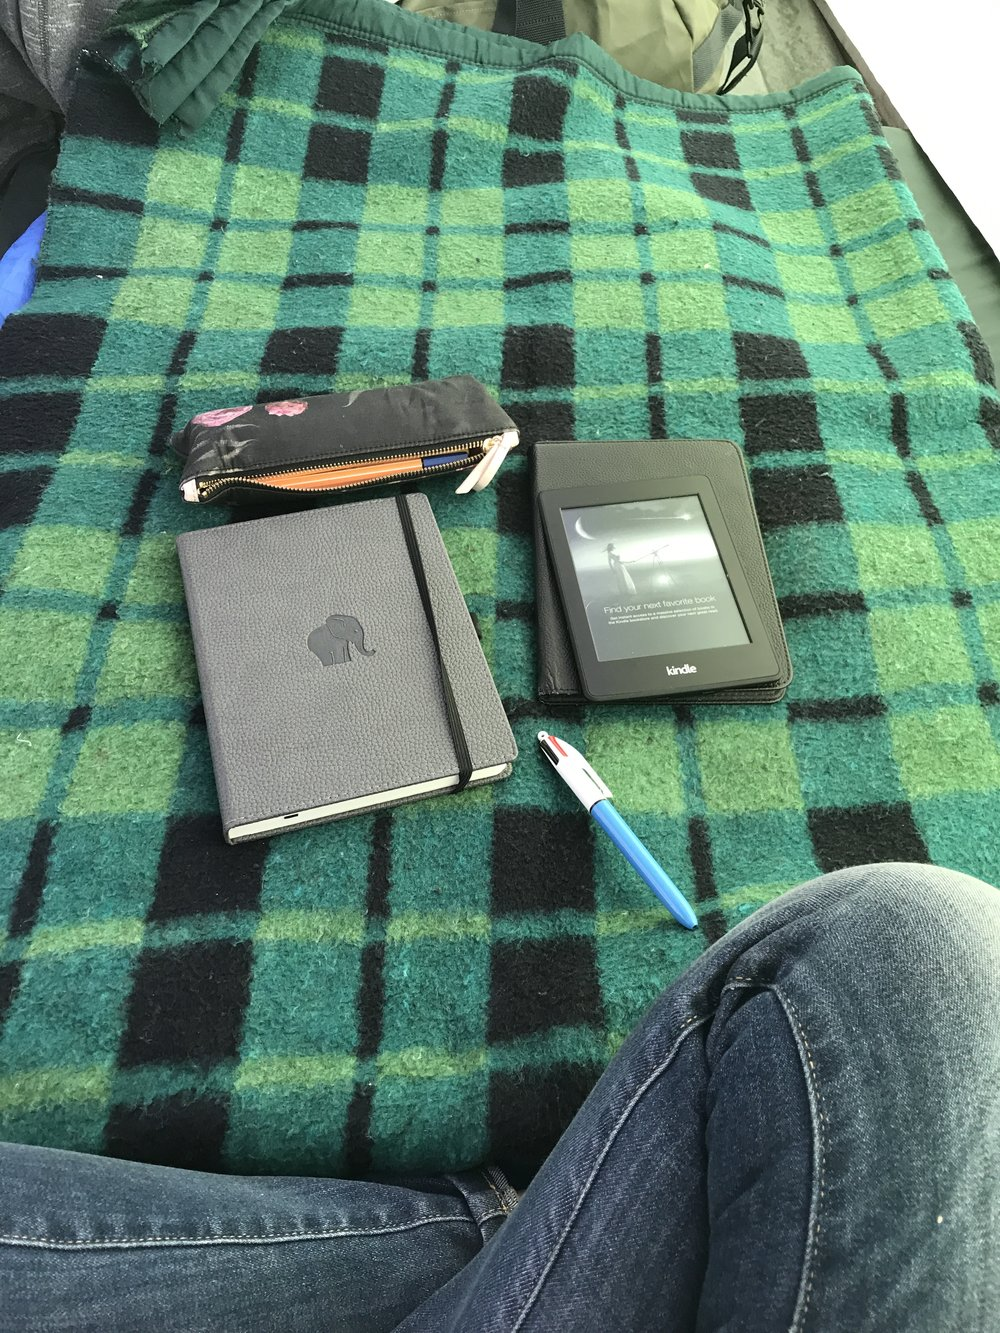 Journaling and reading during the afternoon downtime